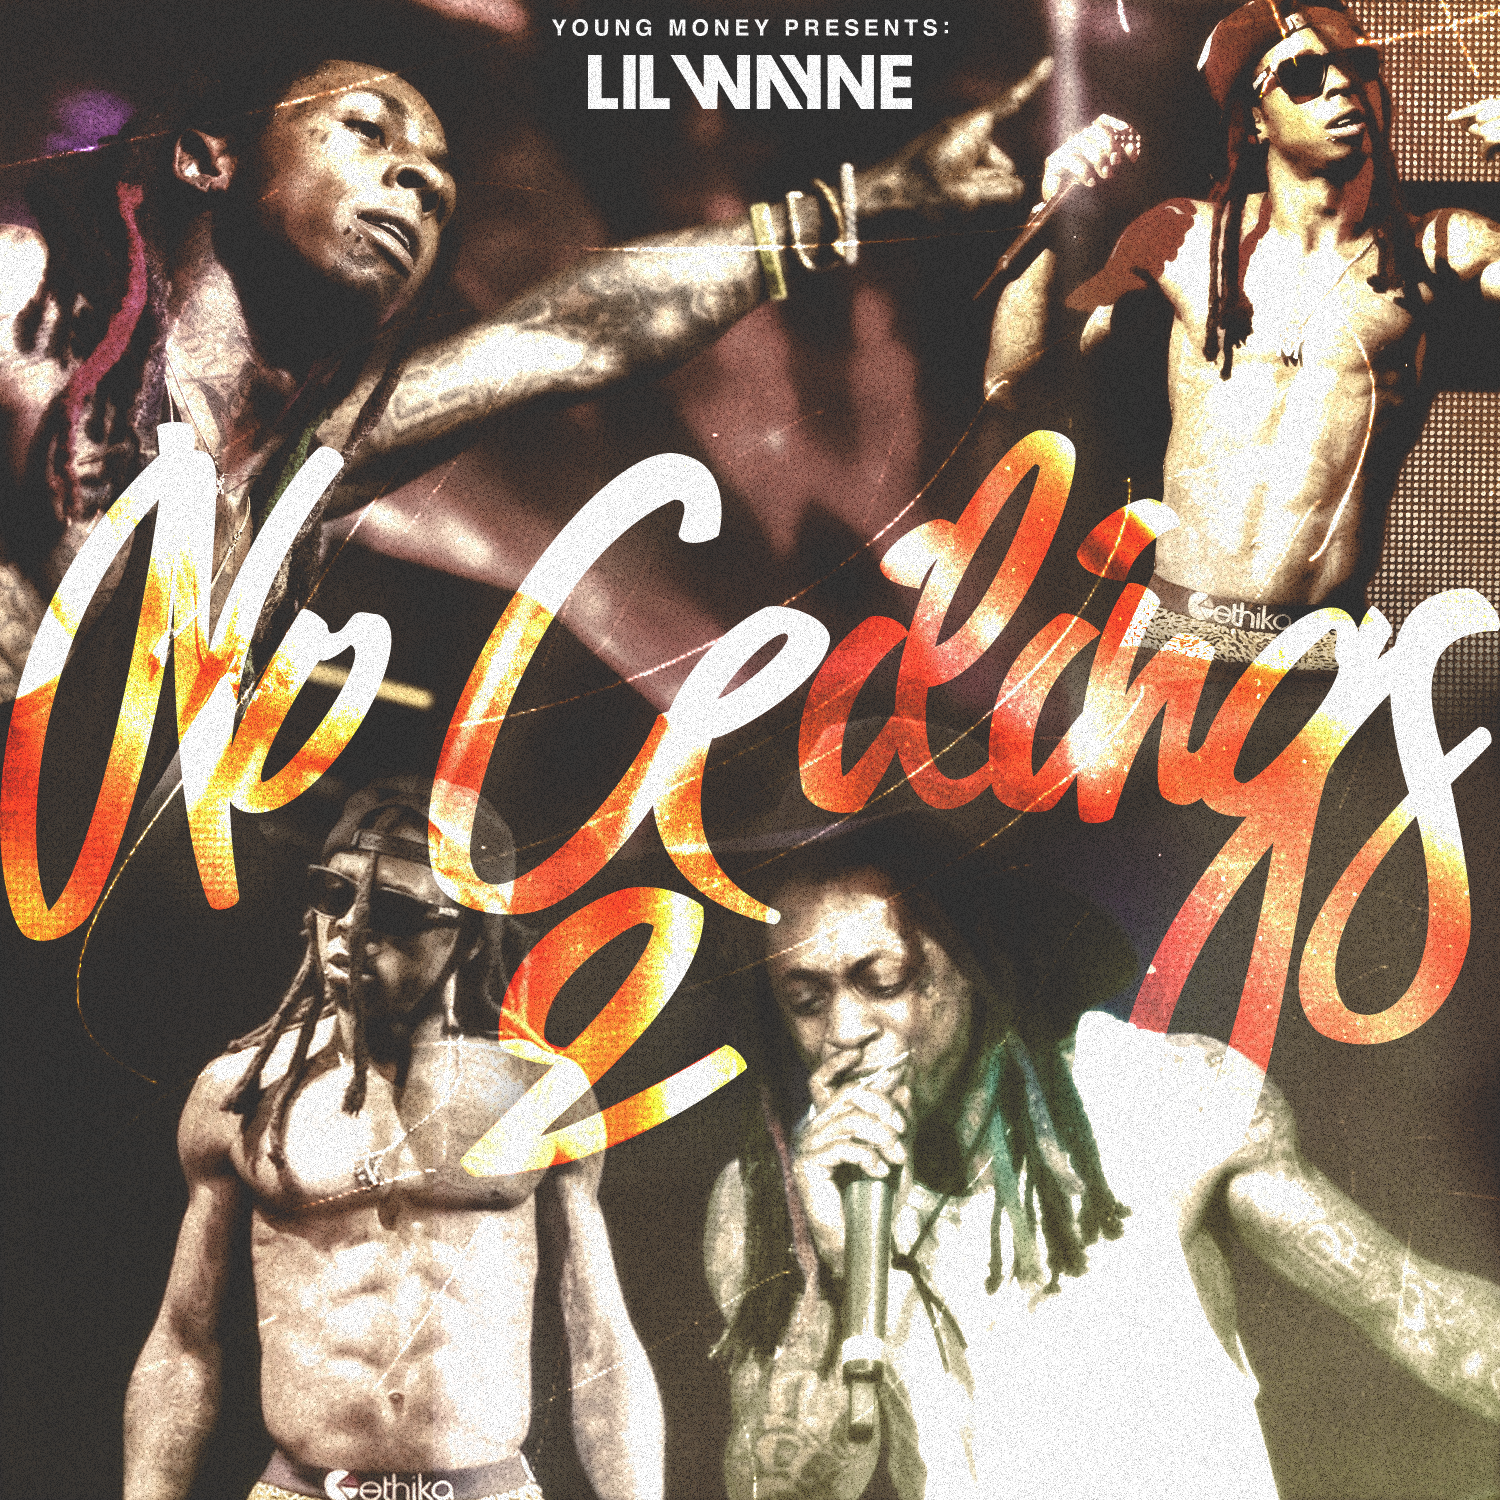 "UNUSED front cover artwork for Lil Wayne's 2015 mixtape ""No Ceilings 2"". Cover inspired by Lil Wayne's initial ""No Ceilings"" project released in 2009 featuring photos of live preformances."